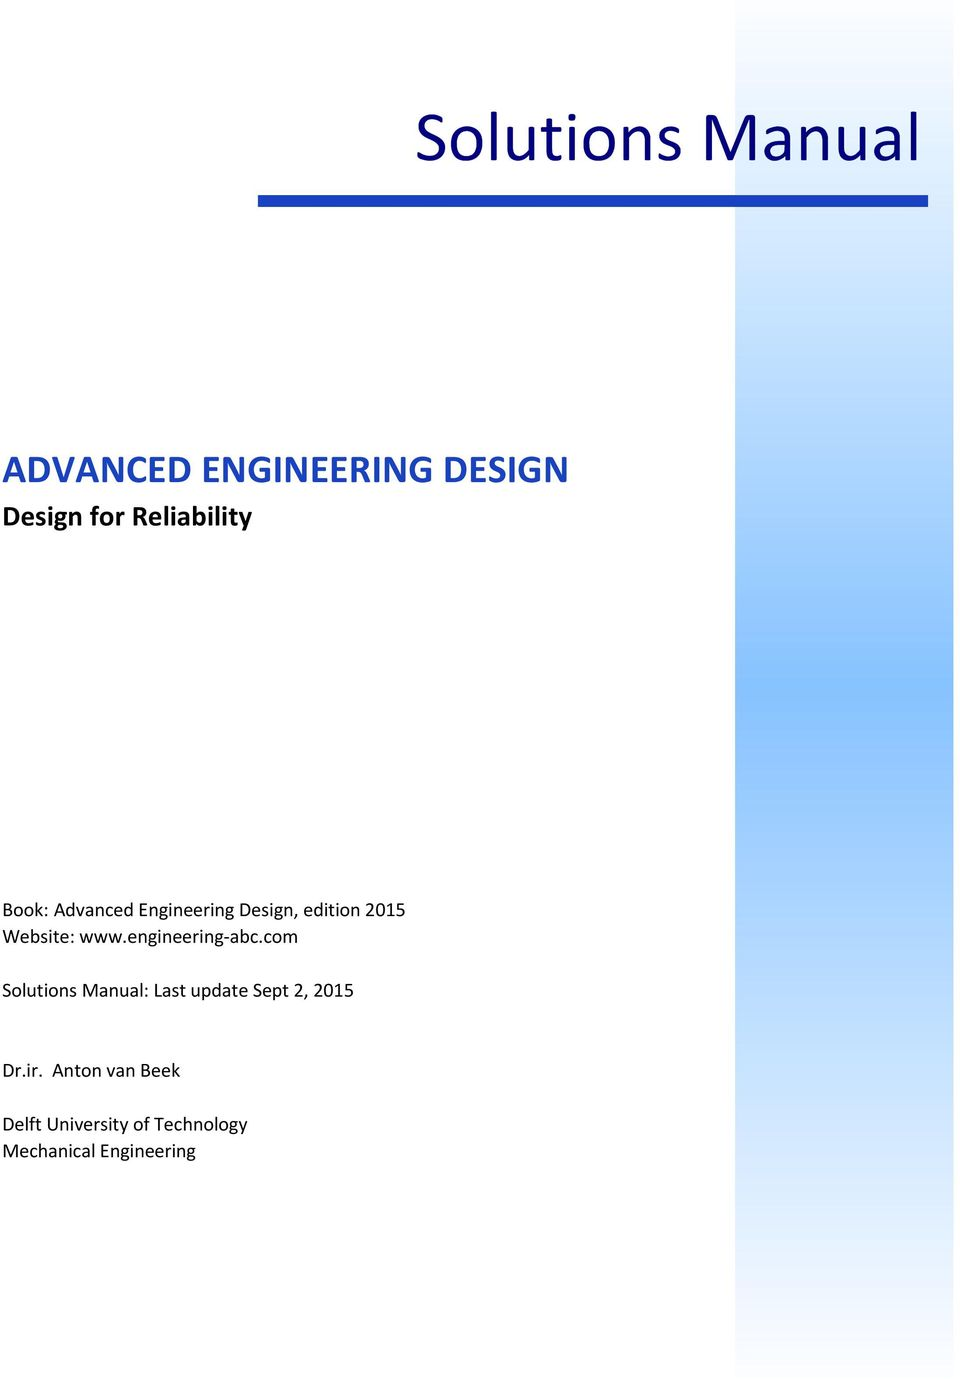 Advanced Engineering Design Pdf Free Download